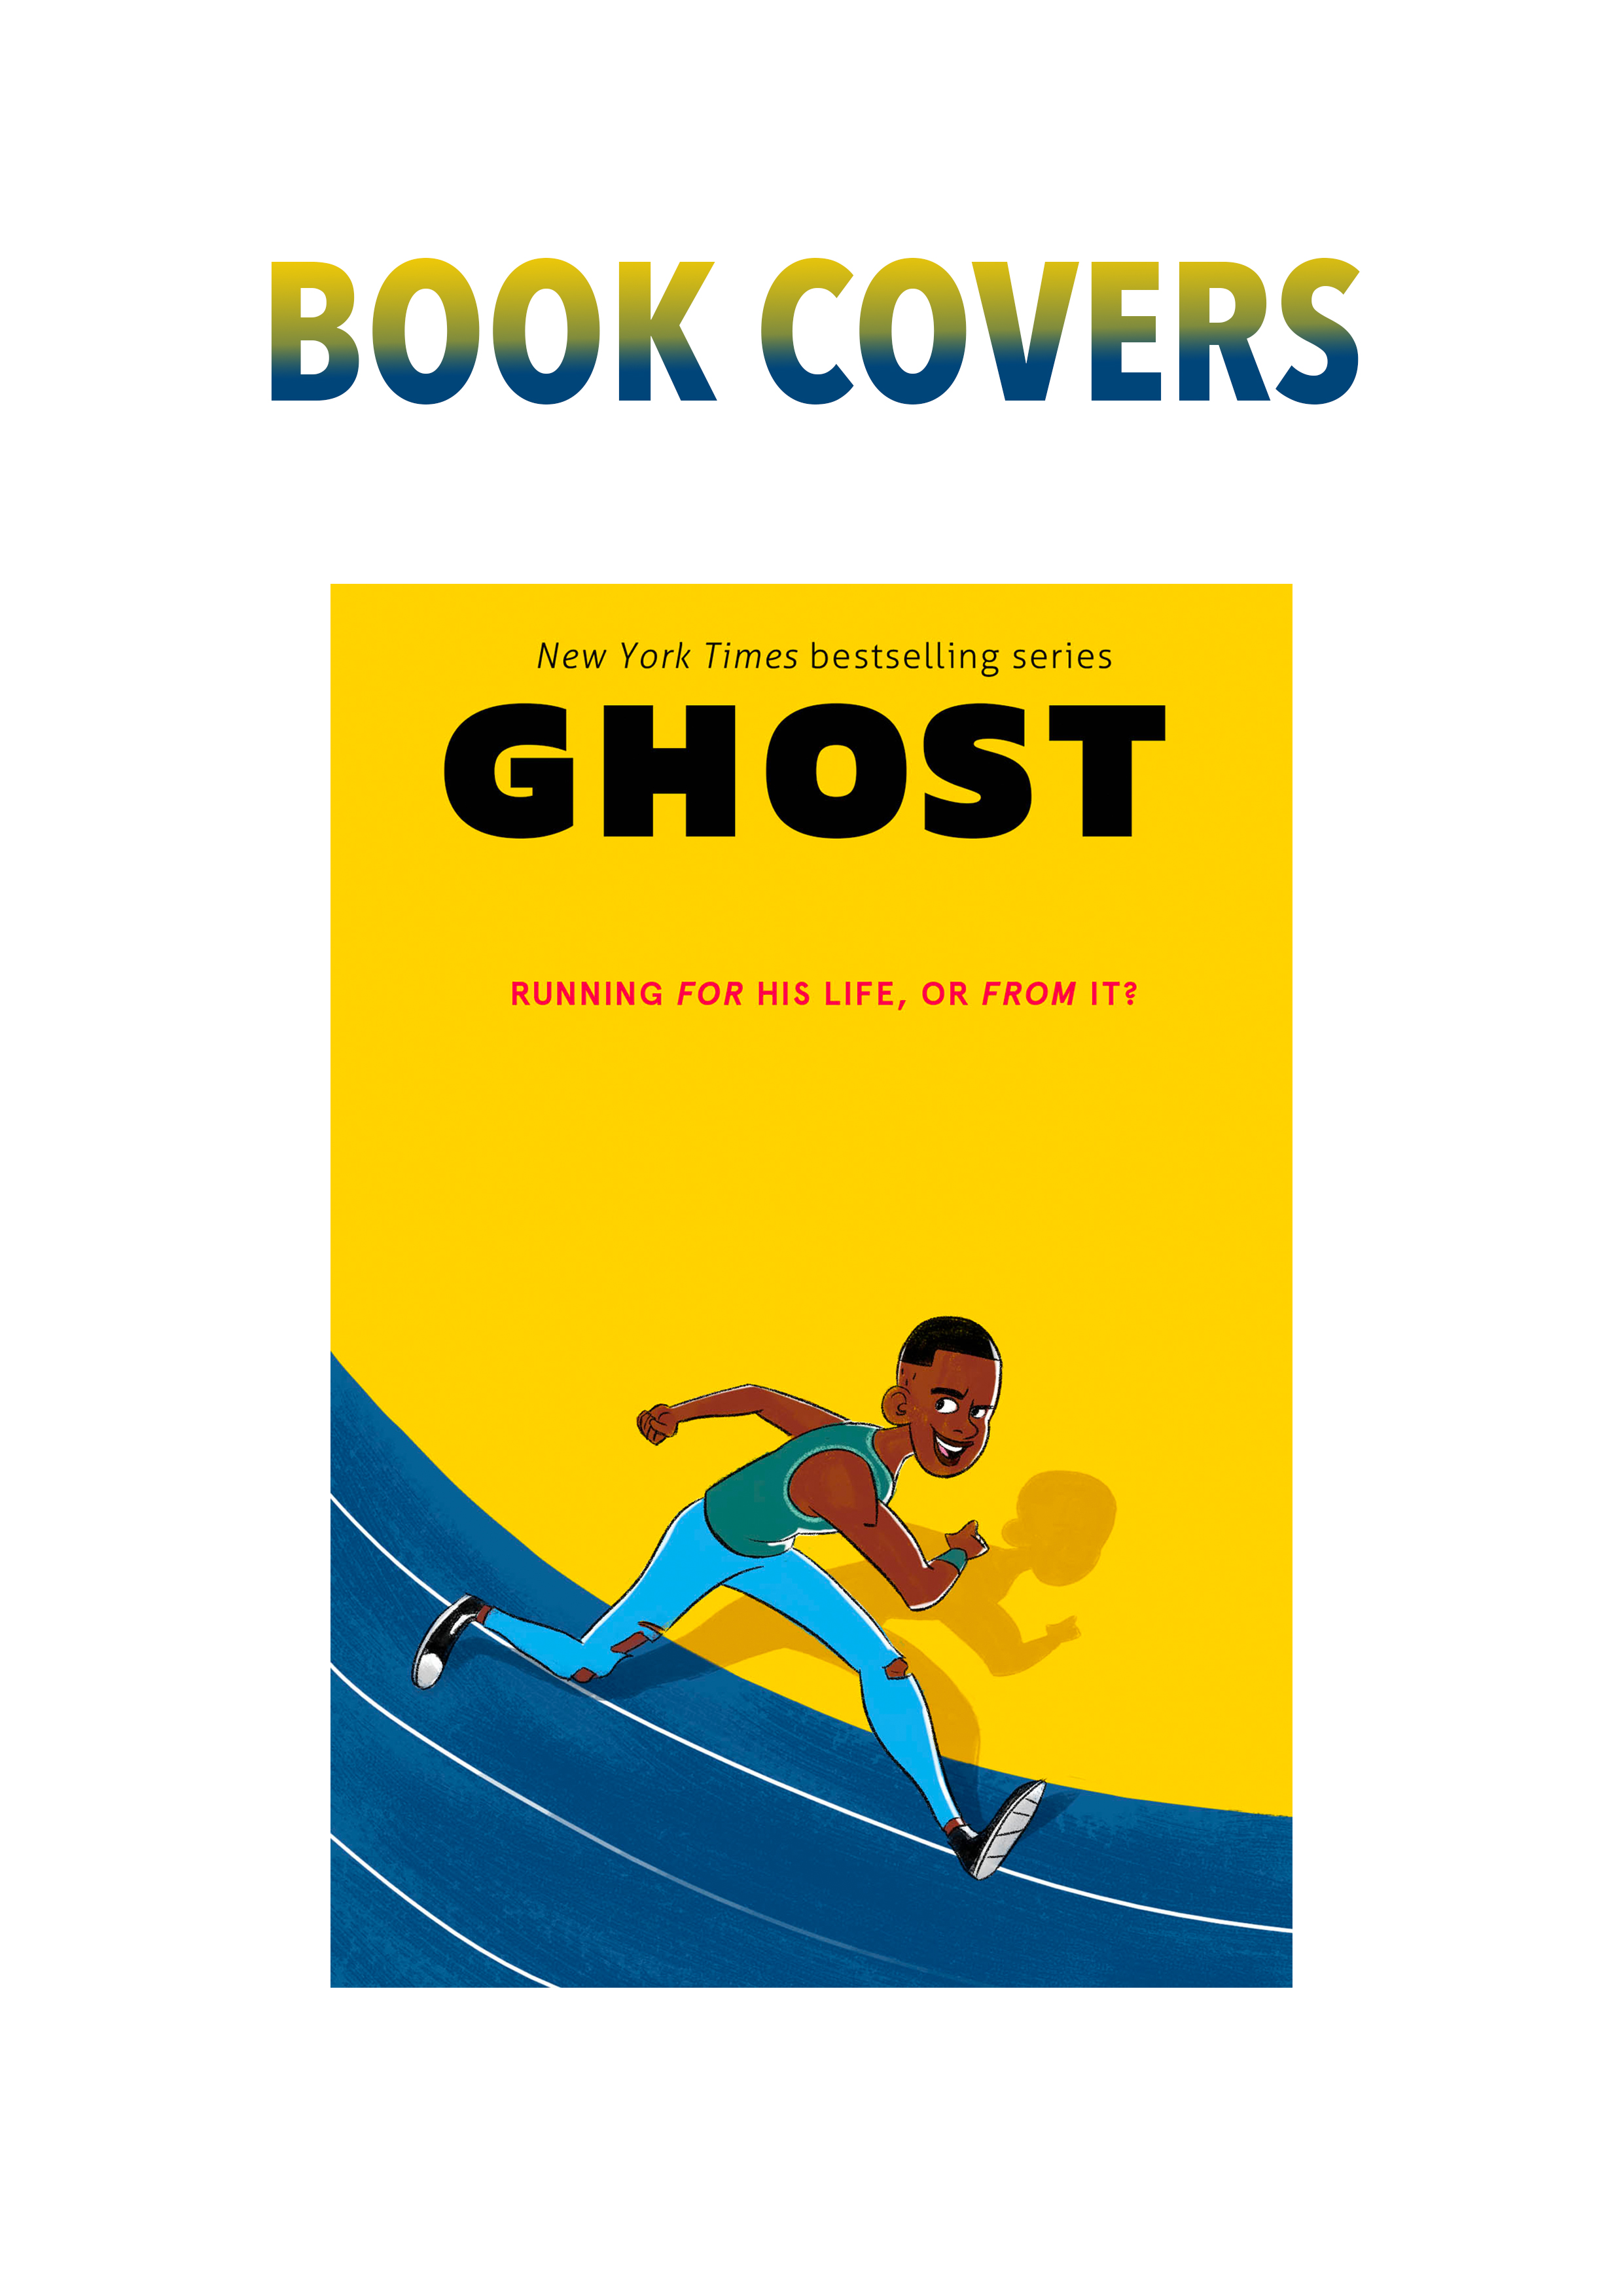 book cover cover page - August 2019.jpg